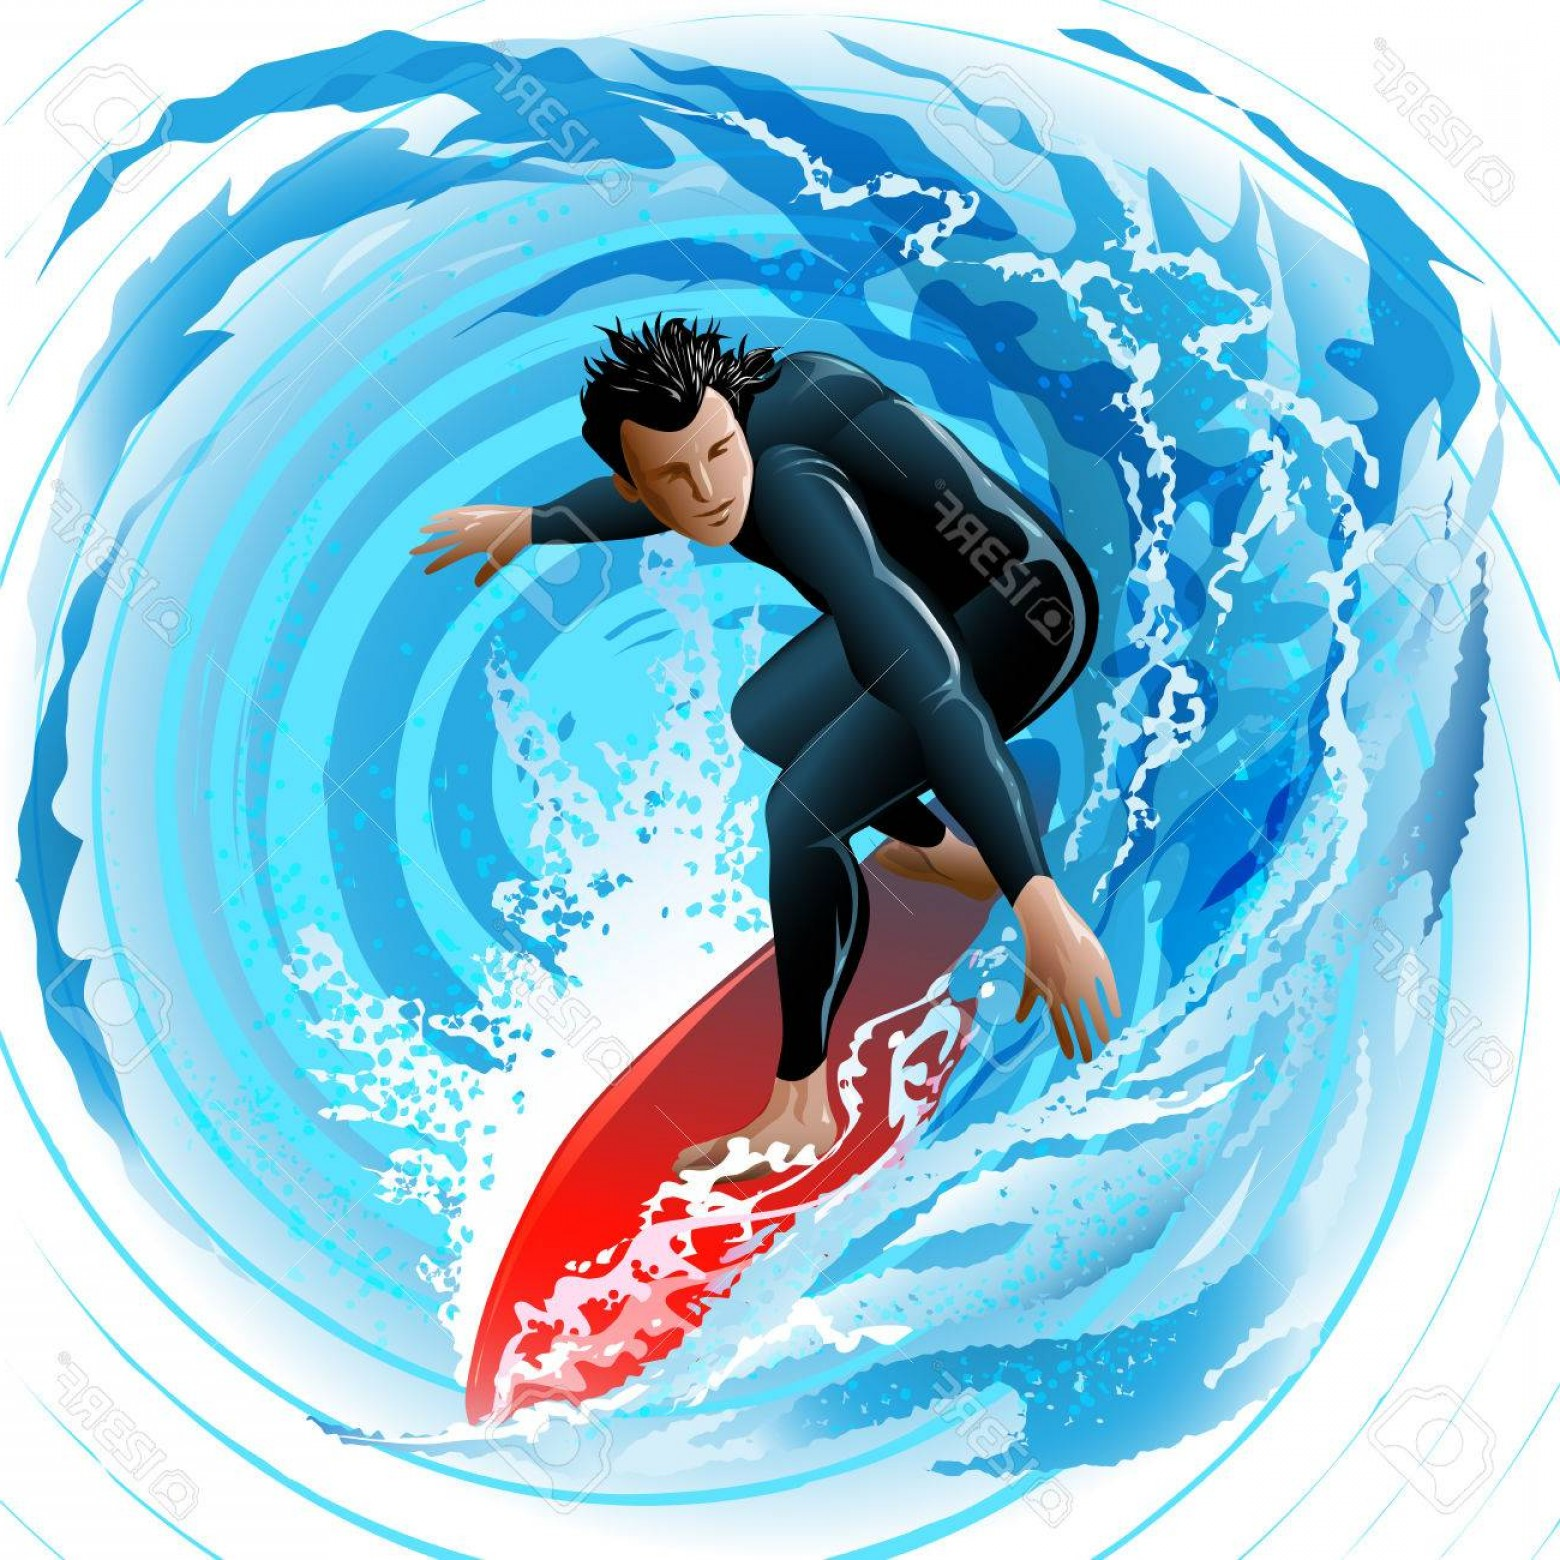 Waves With Surfer Silhouette Vector: Photoillustration With Young Man Sliding On A Surf Board On Water Surface Against Huge Waves